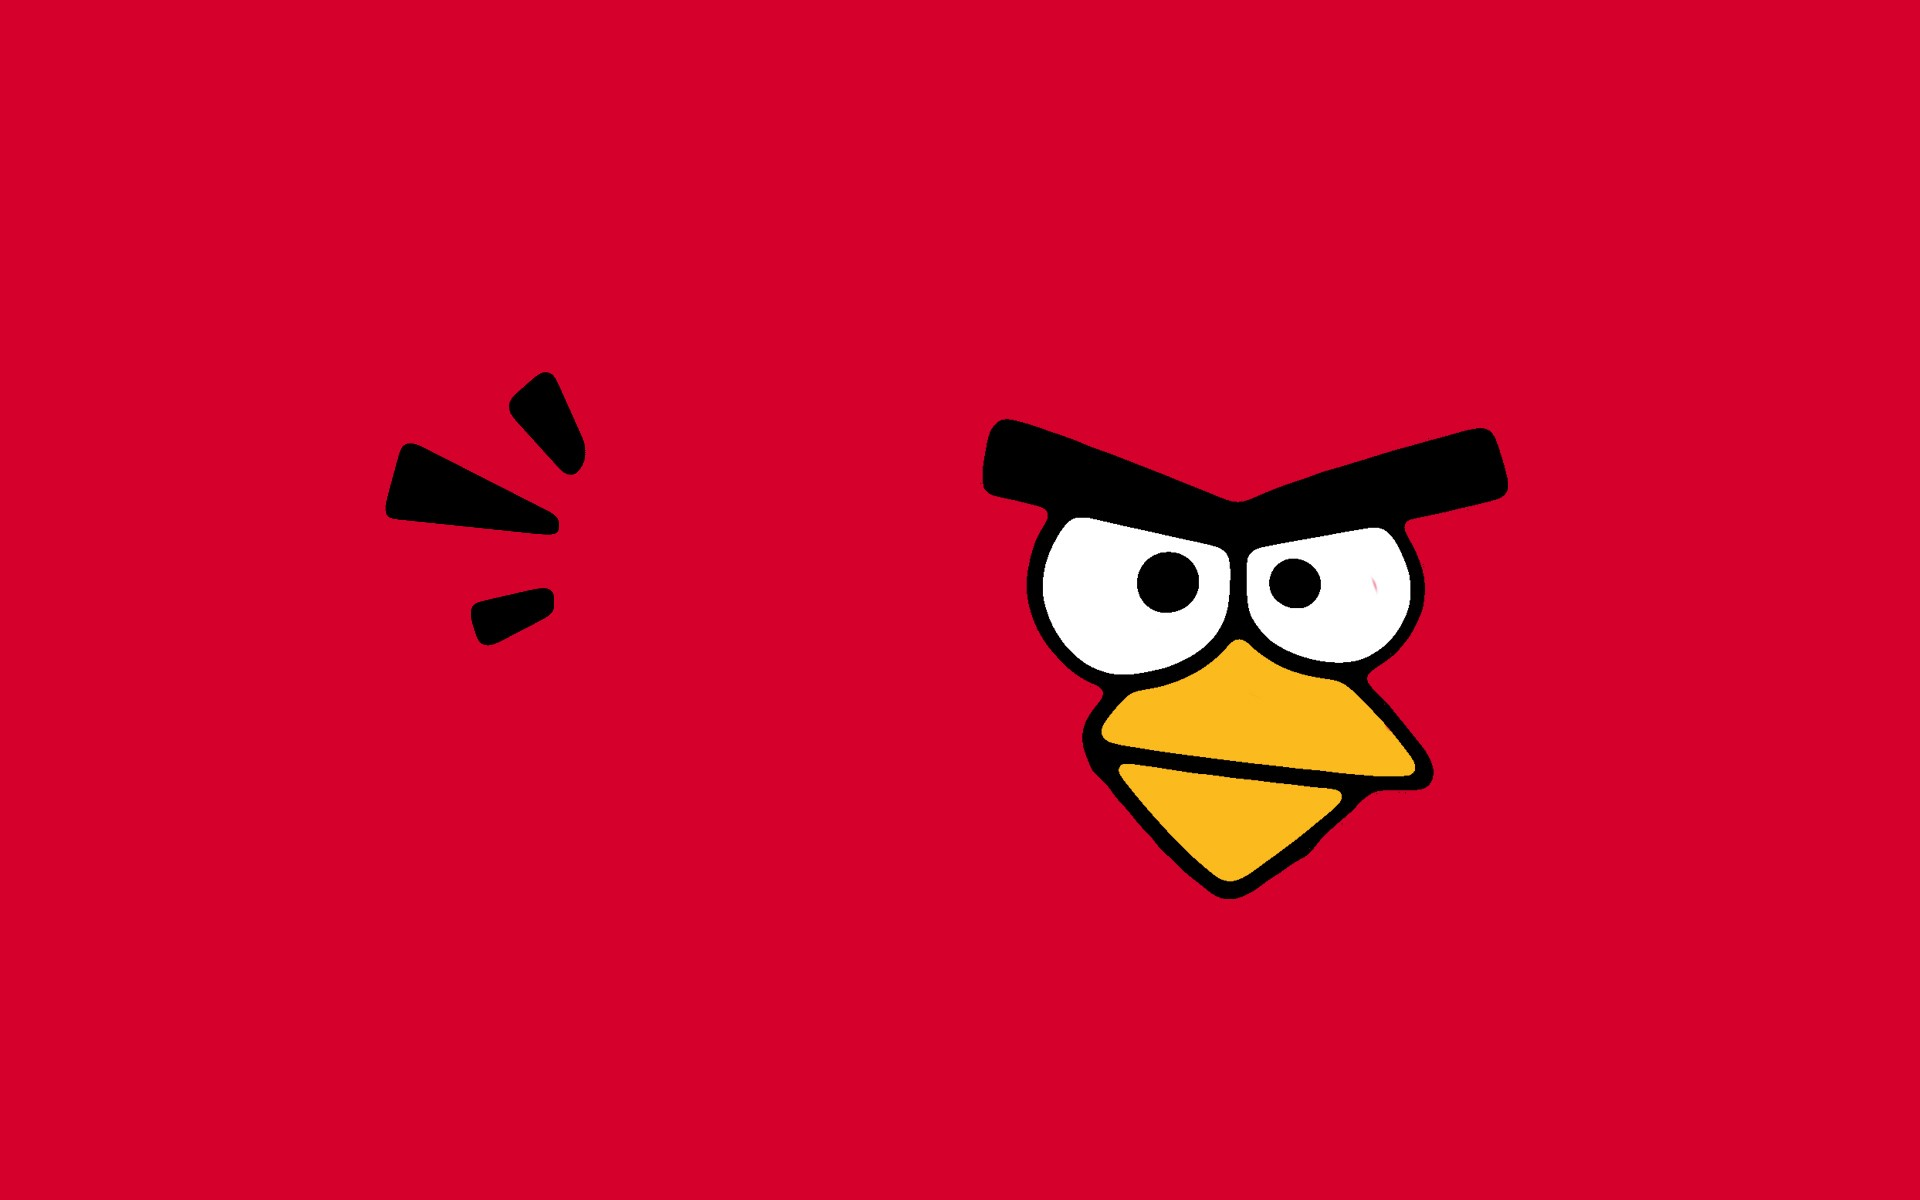 angry birds wallpaper 13229 1920x1200 px ~ hdwallsource